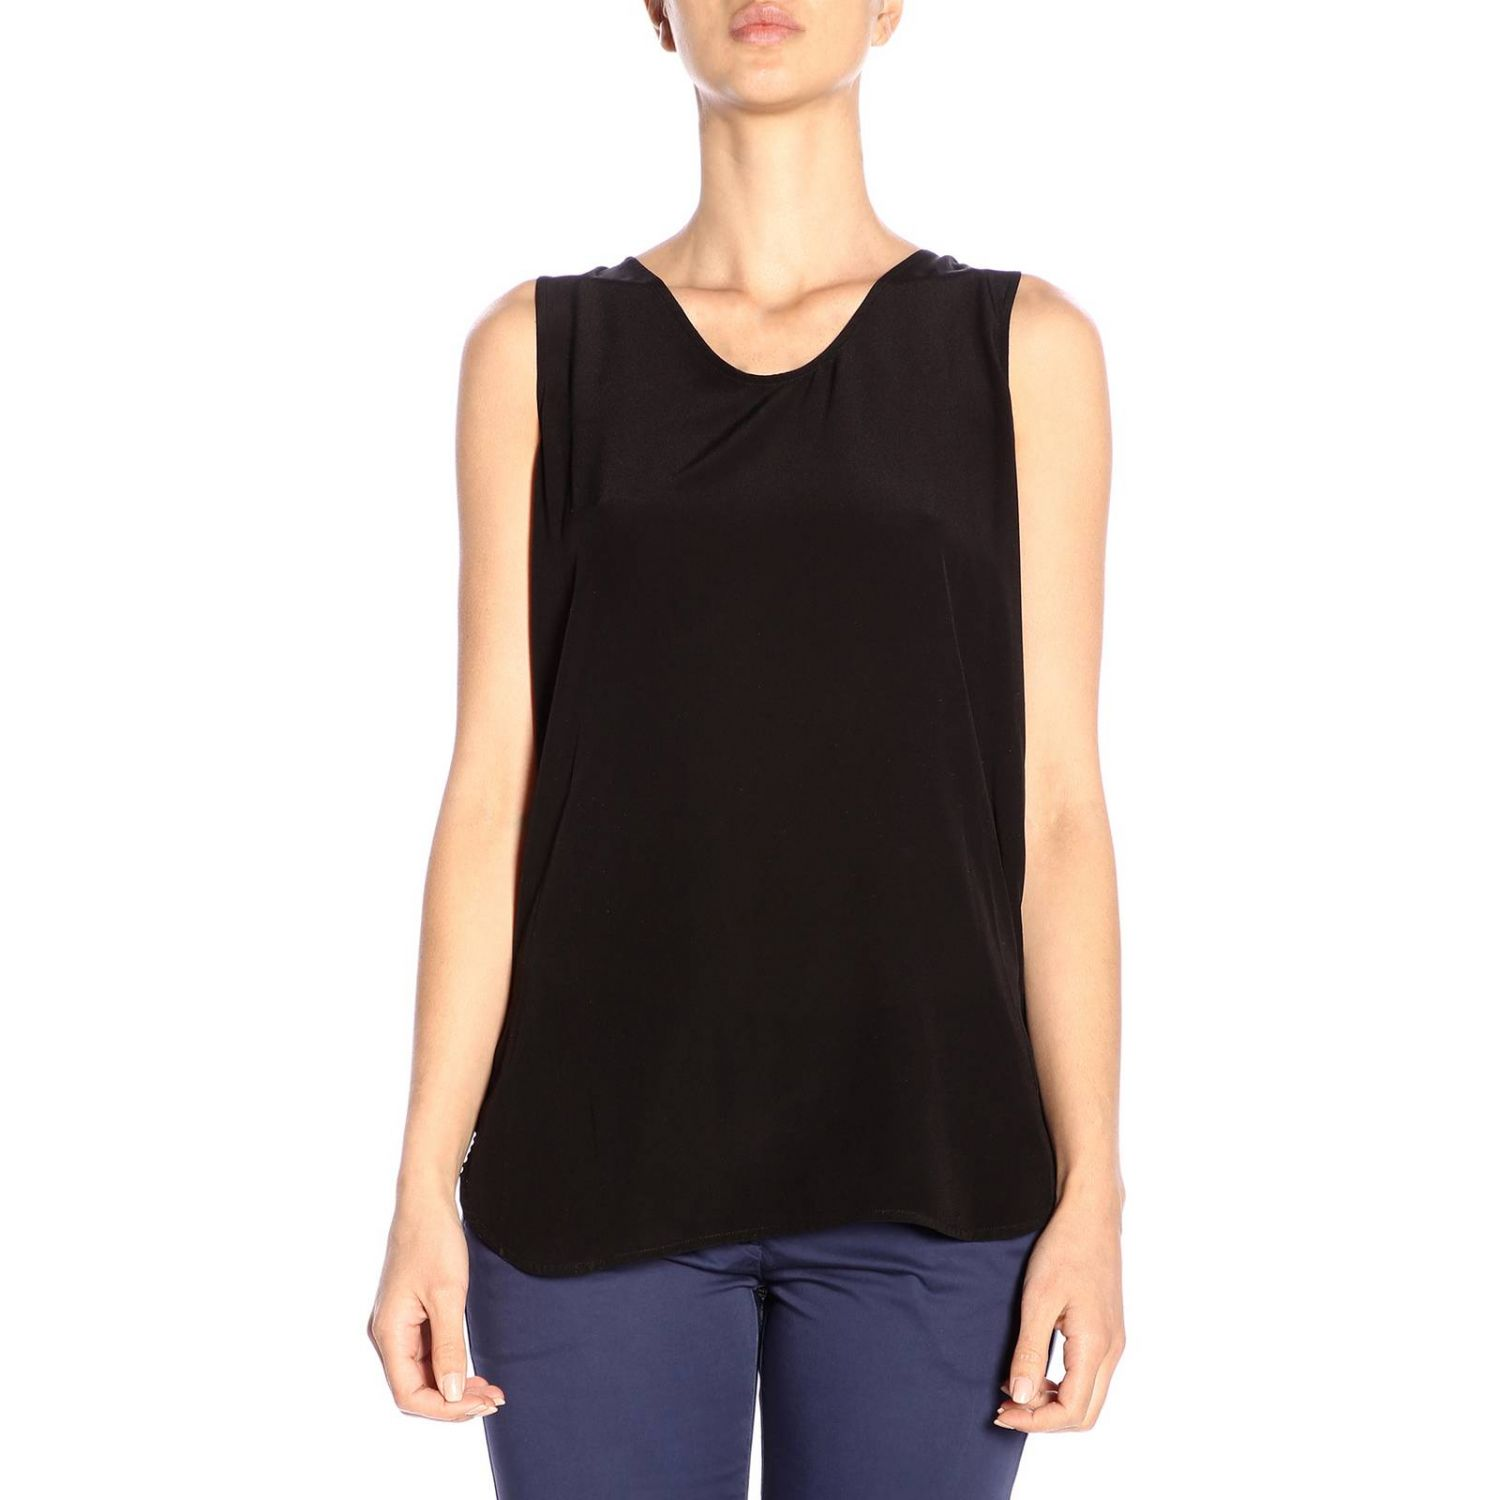 T-shirt women Woolrich black 1